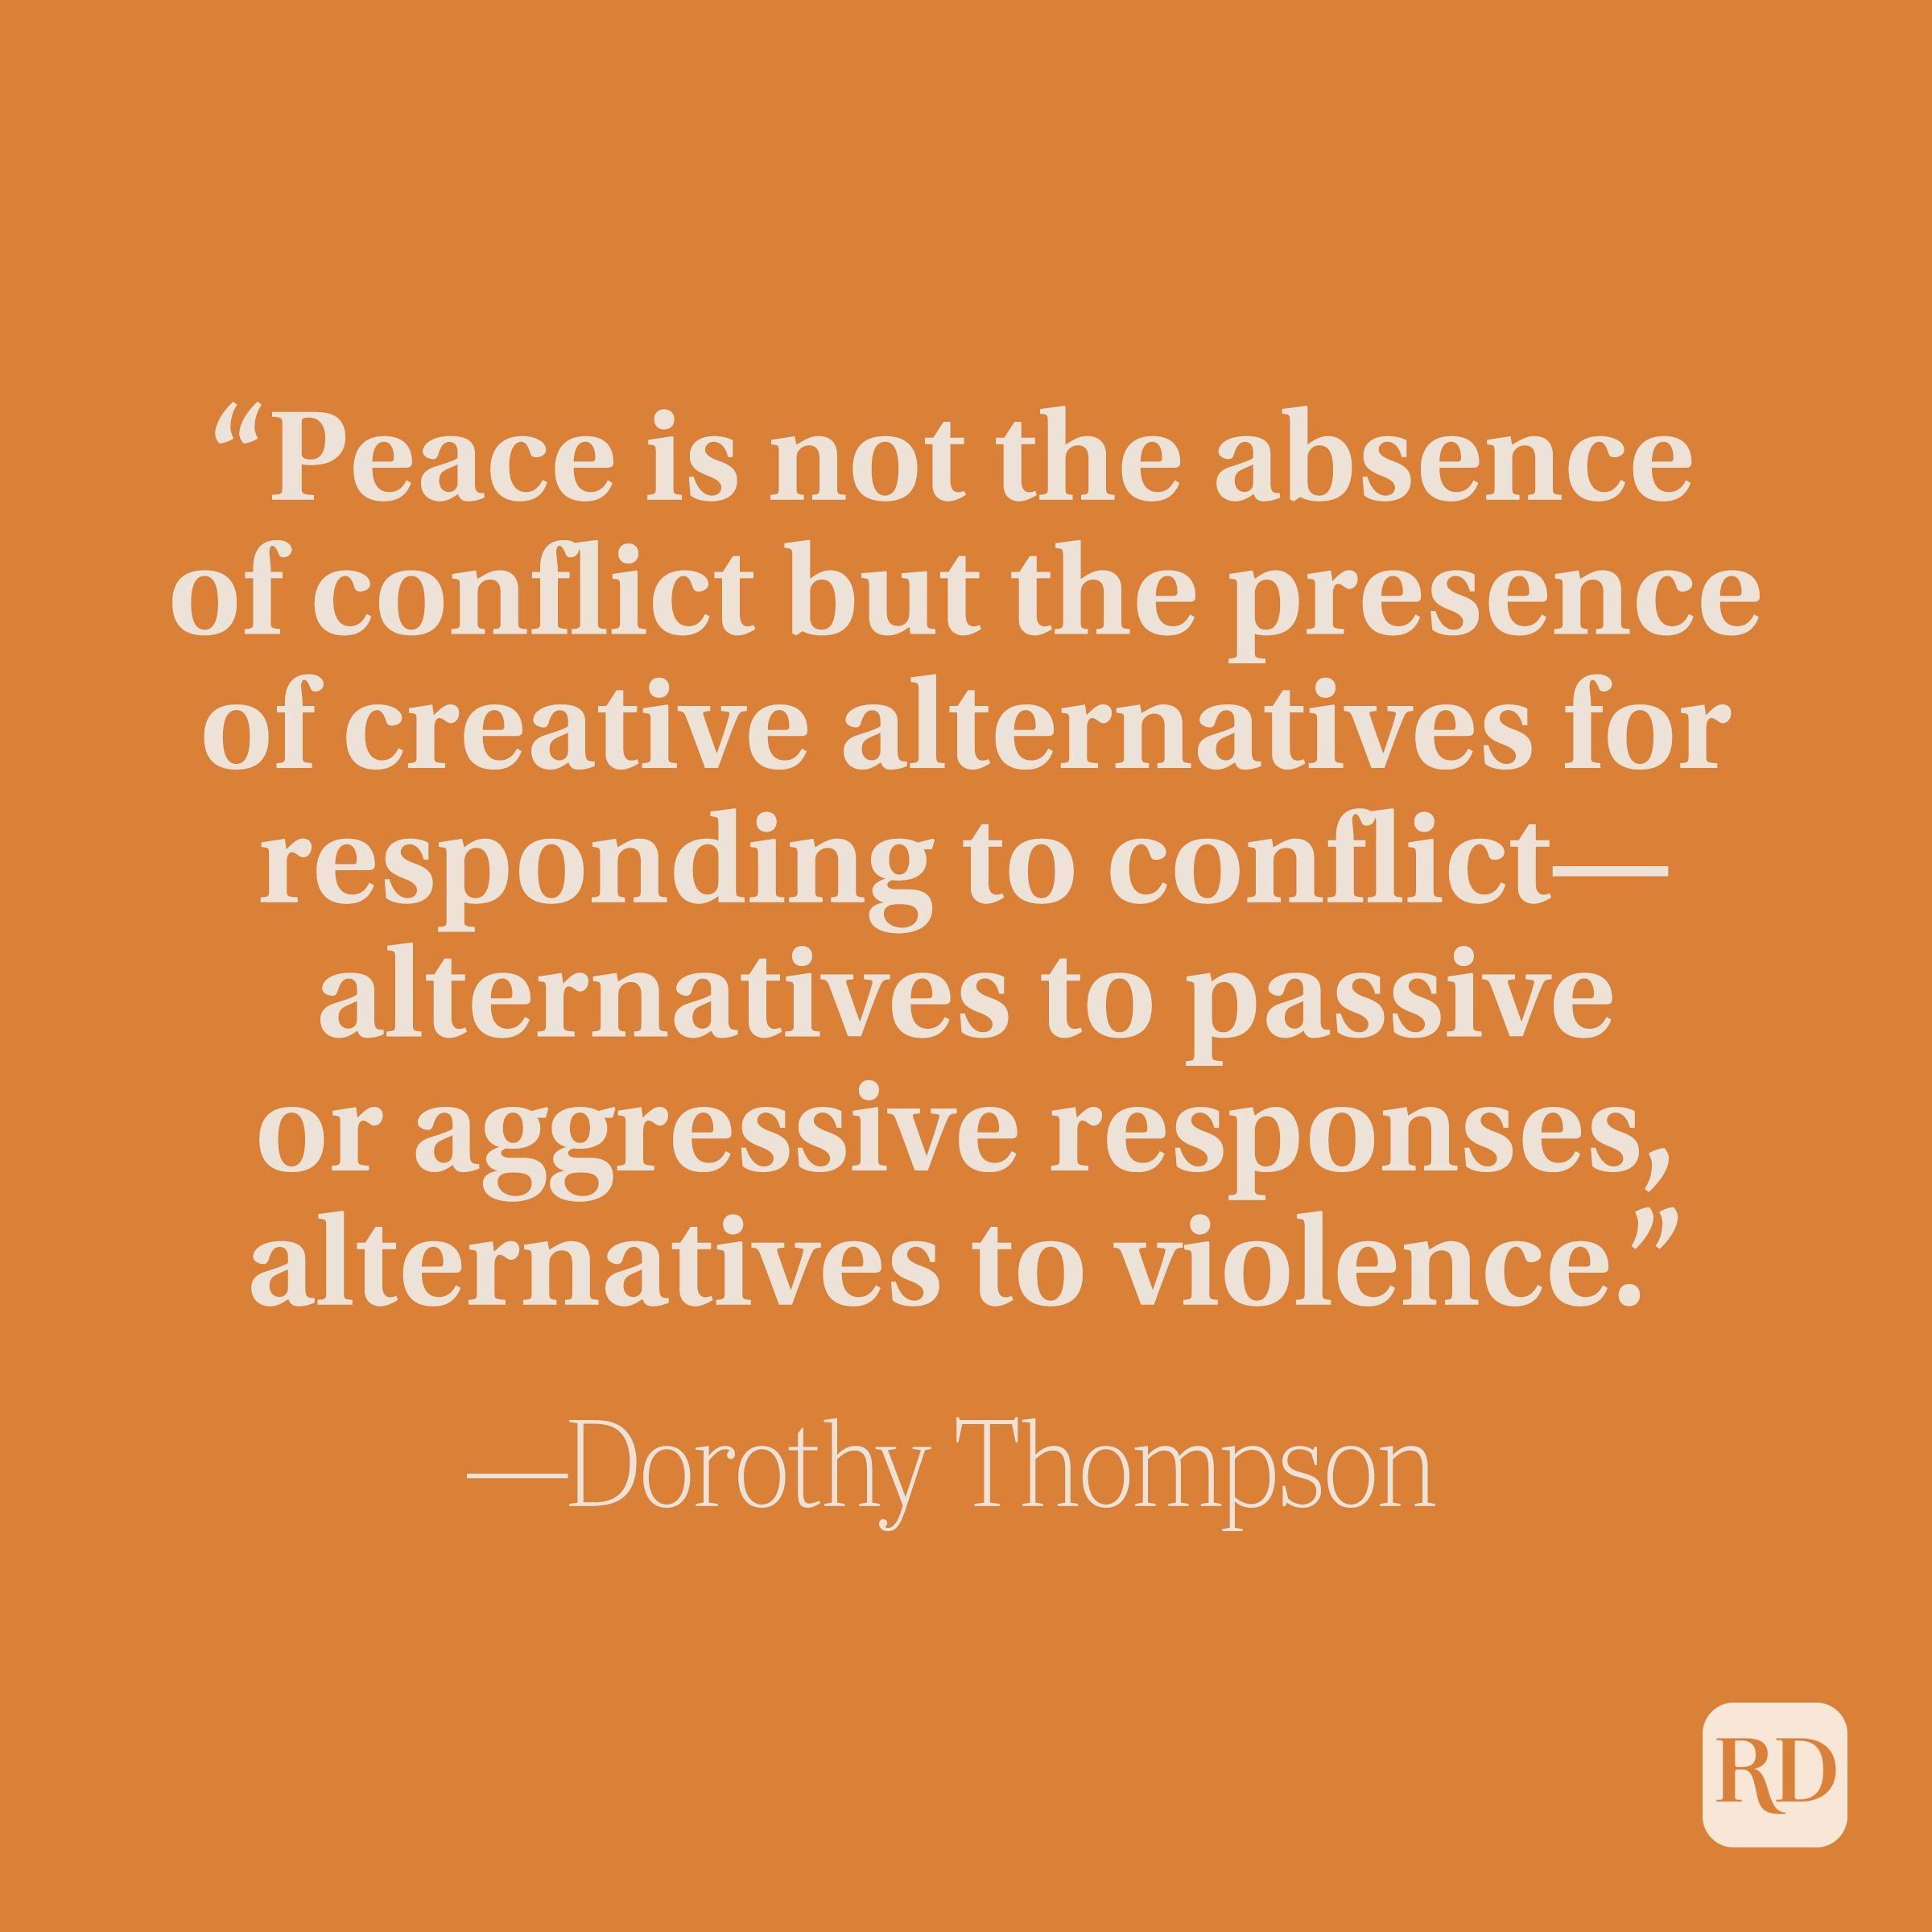 """""""Peace is not the absence of conflict but the presence of creative alternatives for responding to conflict—alternatives to passive or aggressive responses, alternatives to violence."""" —Dorothy Thompson"""